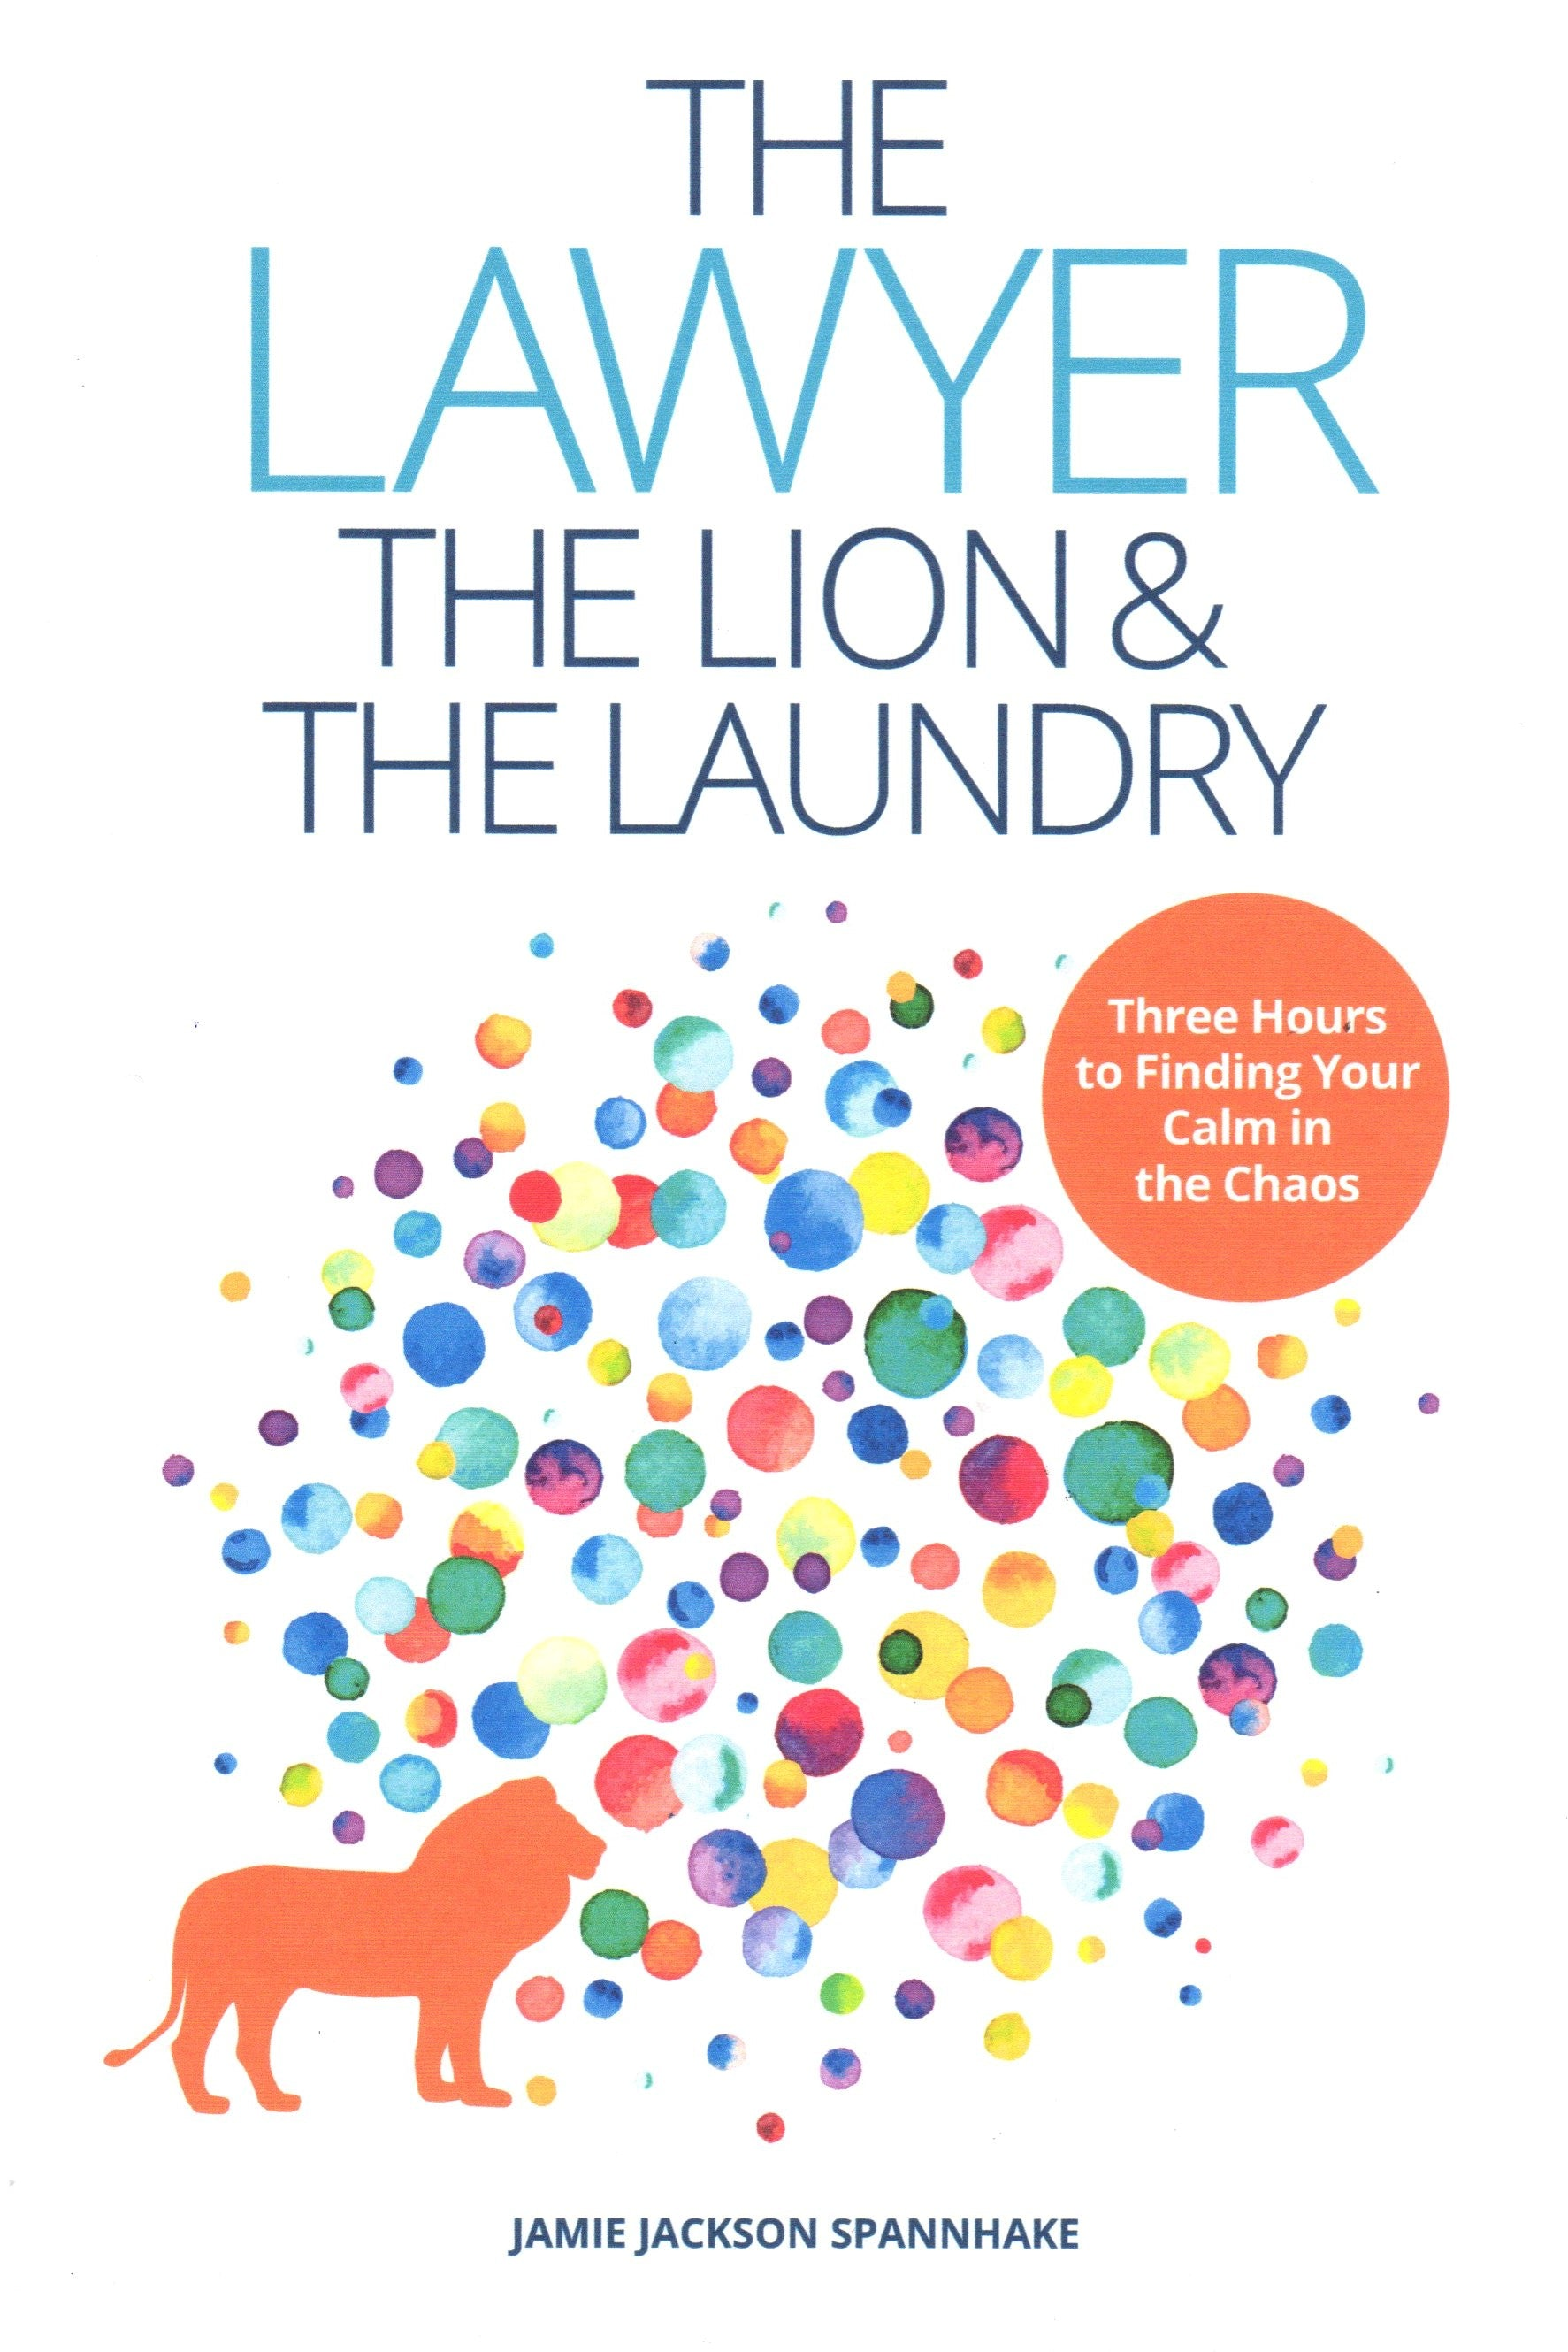 The Lawyer, the Lion & the Laundry